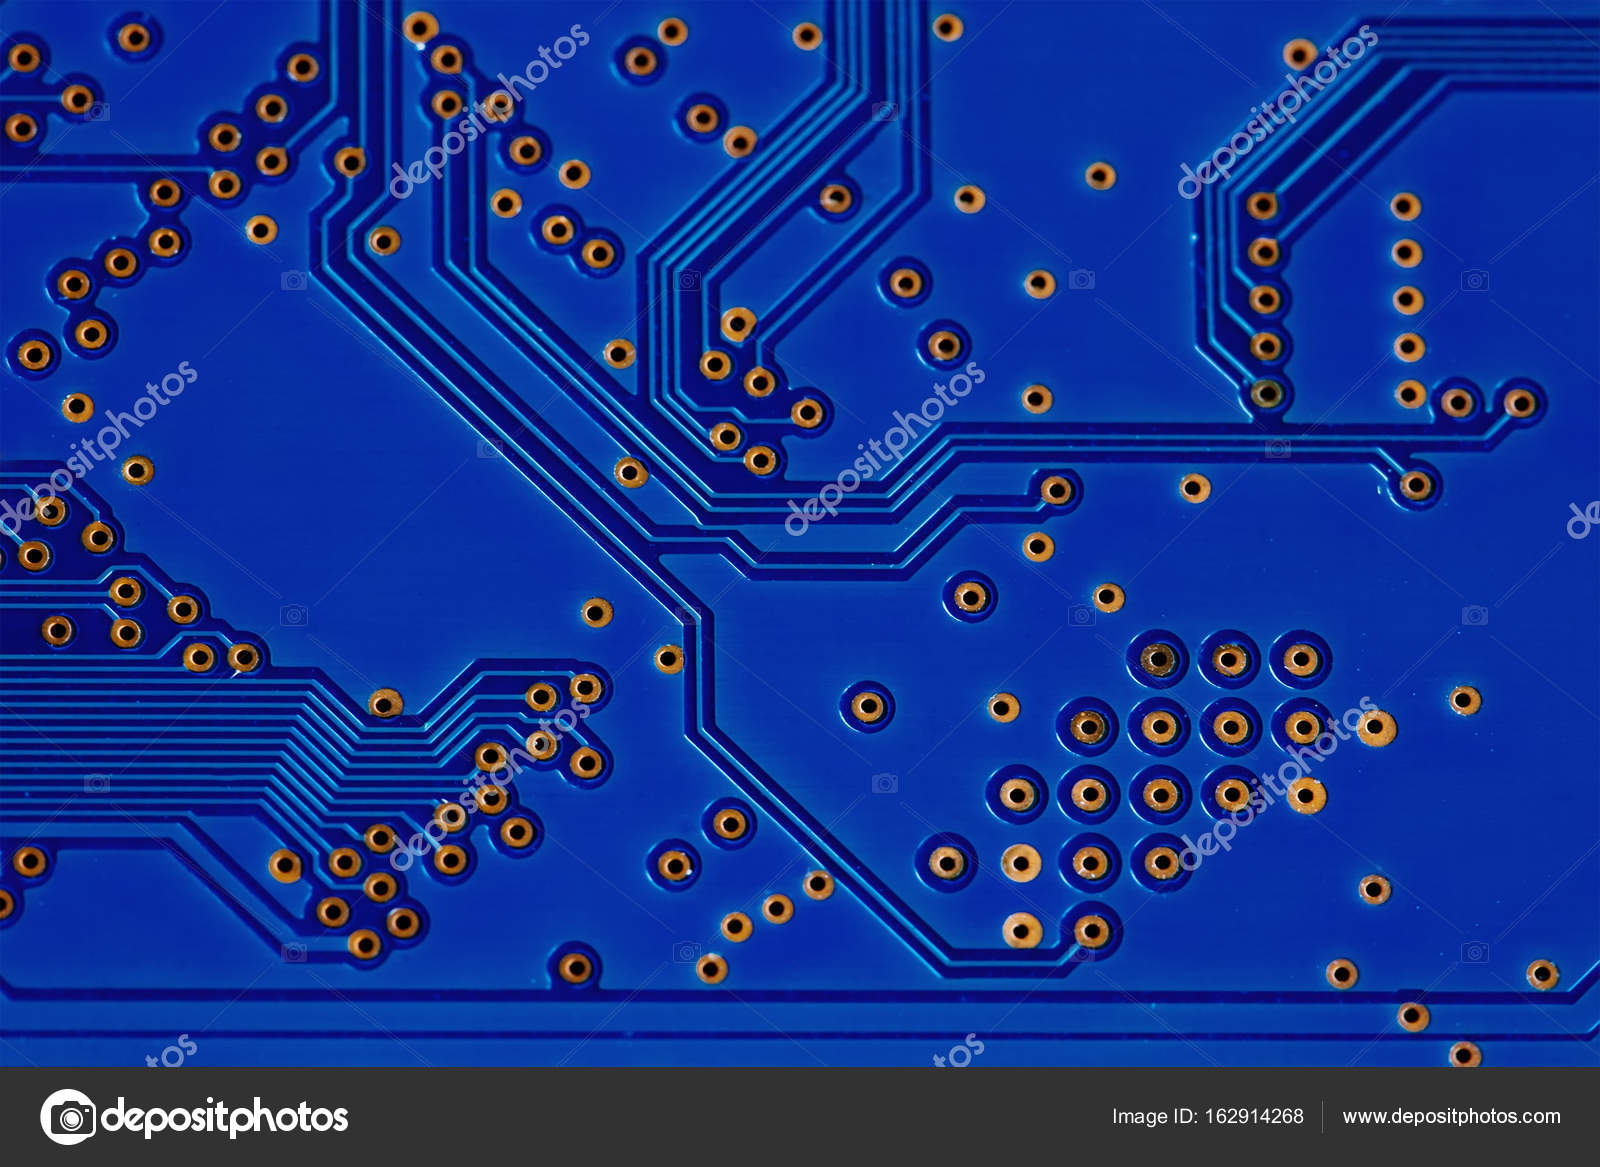 Modern Style Hardware Technology Concept Blue Circuit Board